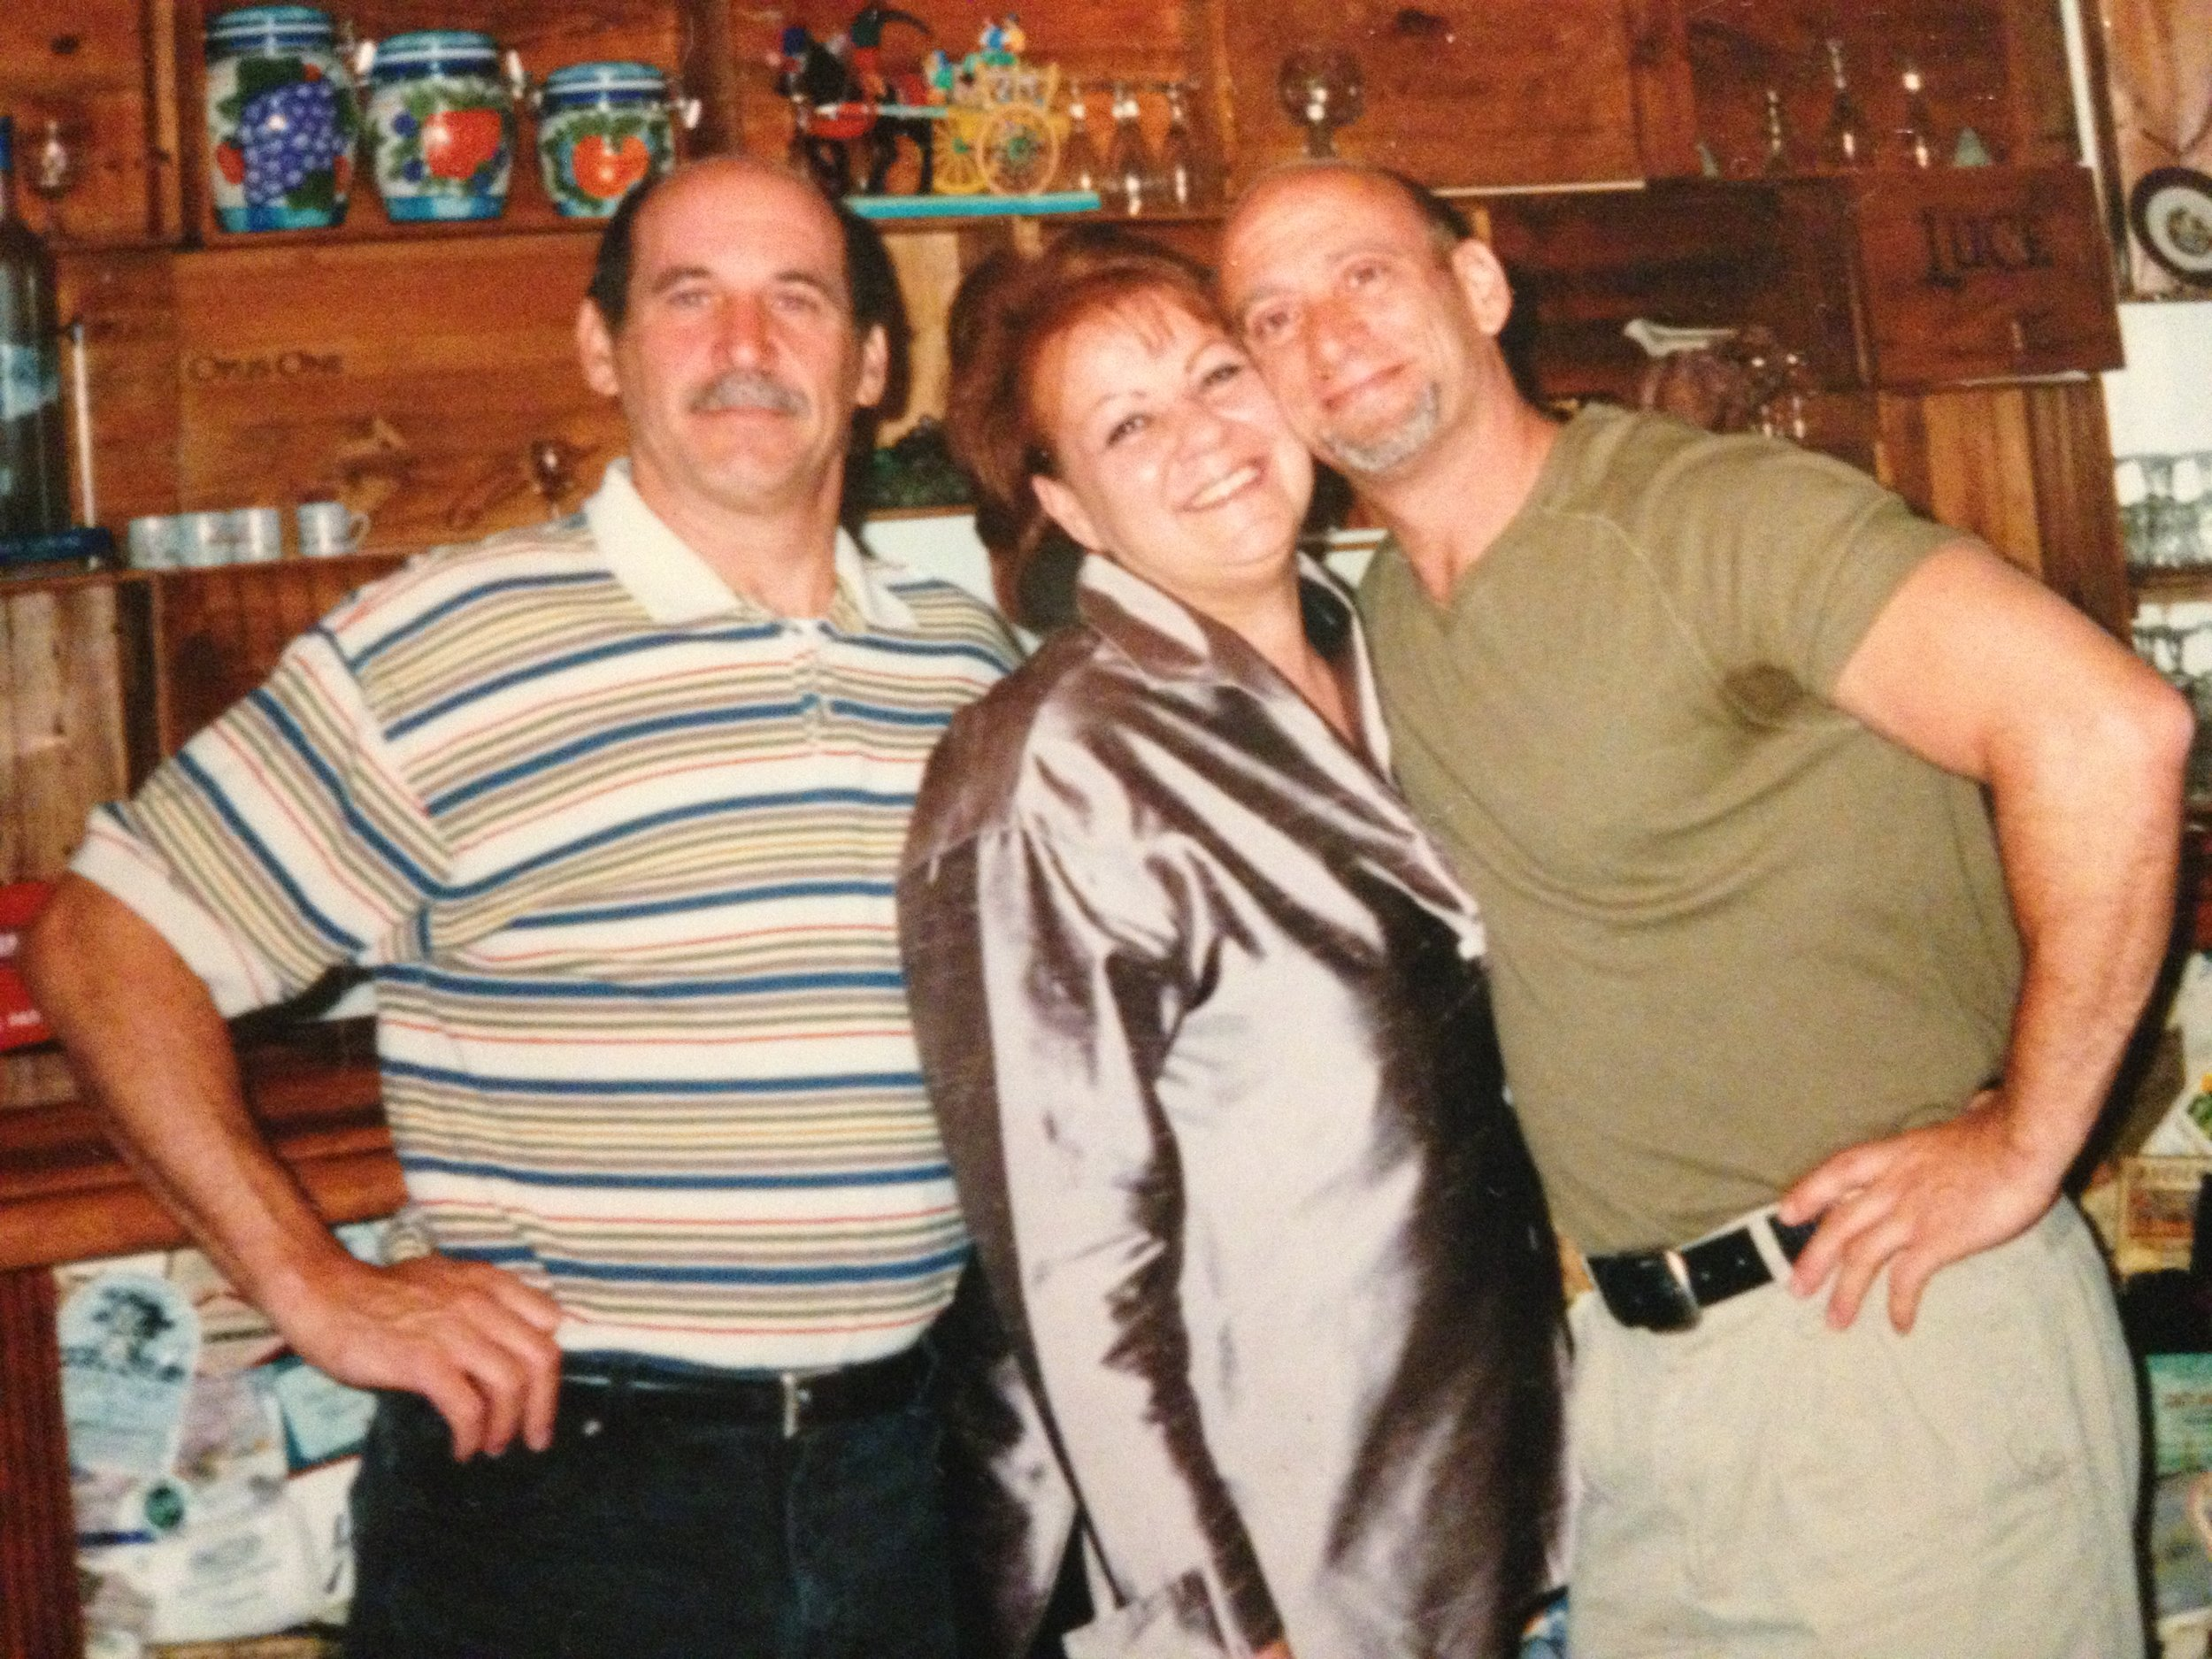 My Uncle Frank, my Mother Rita, and Uncle Sal